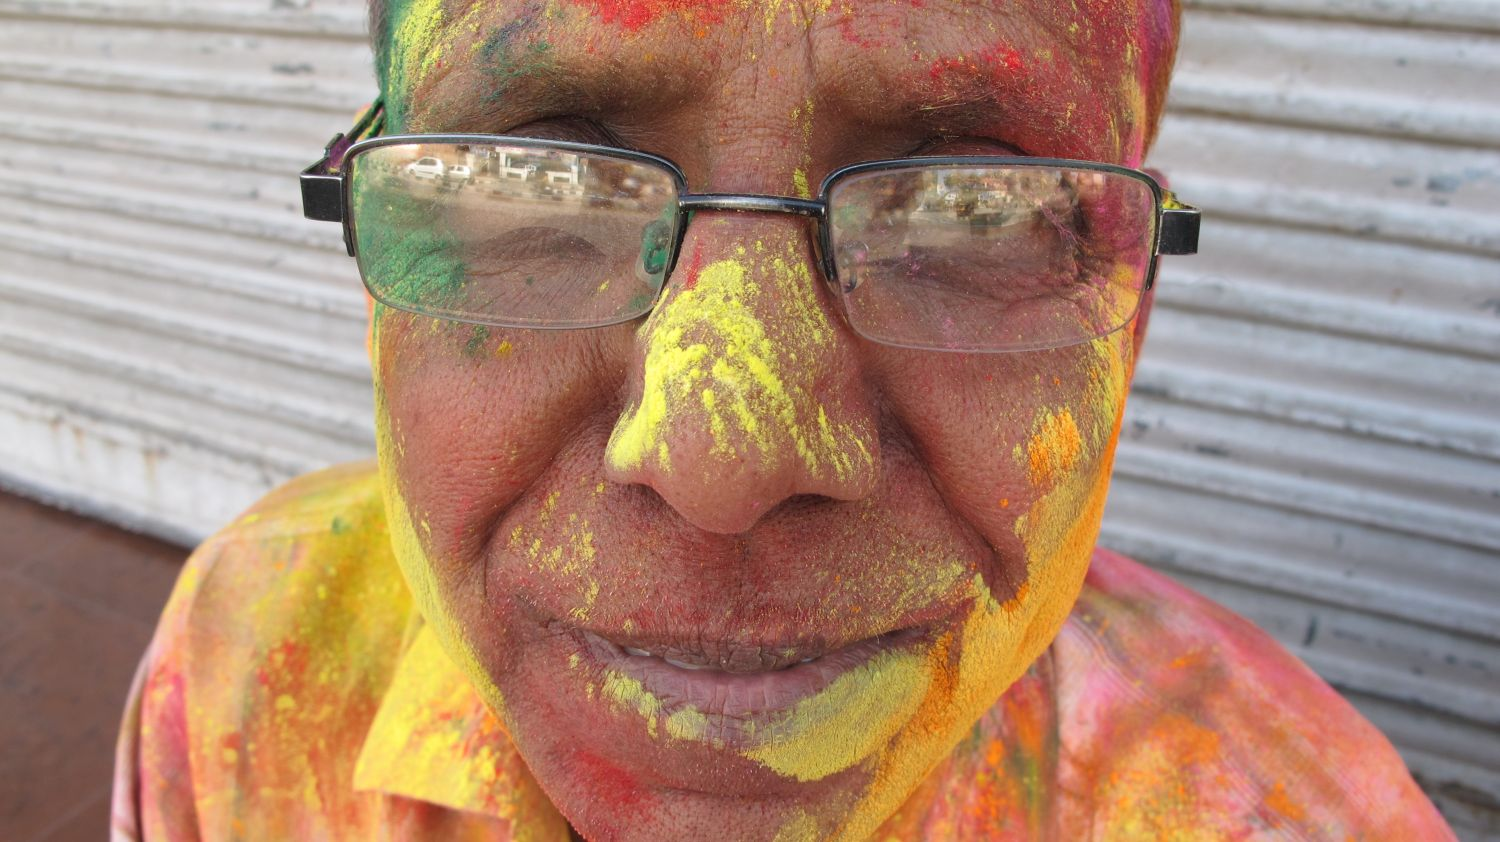 Jaipur | The Holi 13 | Feast of colors | Indian man celebrating the Holi | ©sandrine cohen